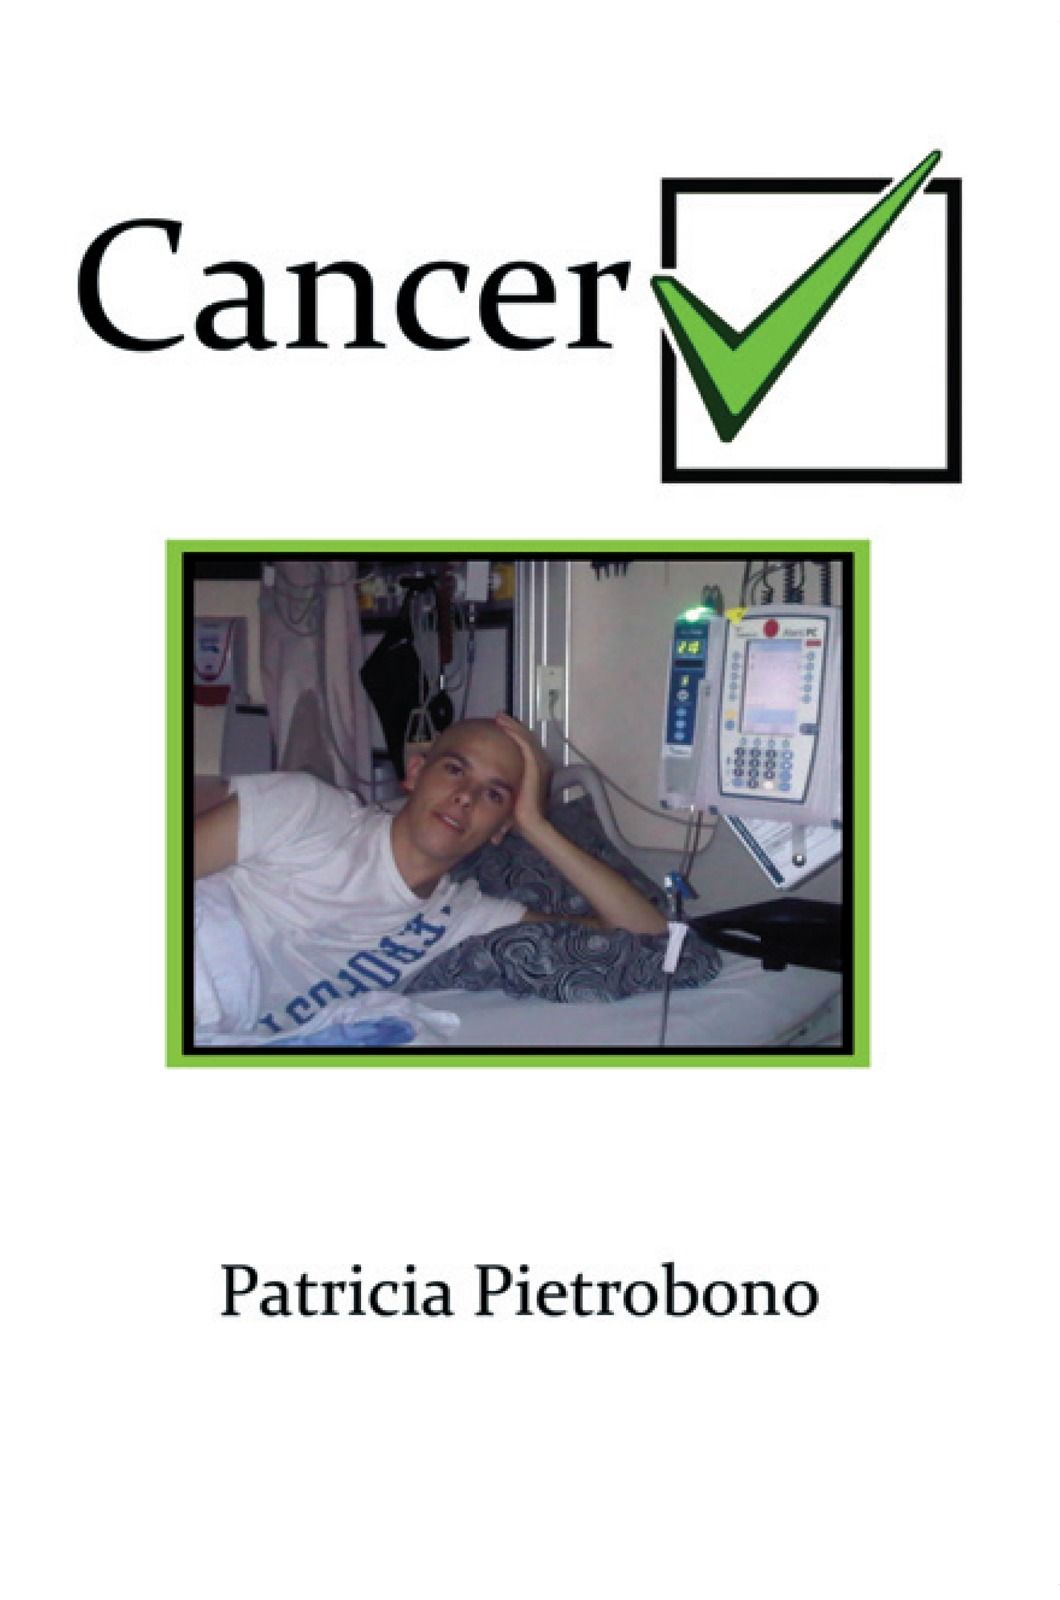 Cancer Check By: Patricia Pietrobono